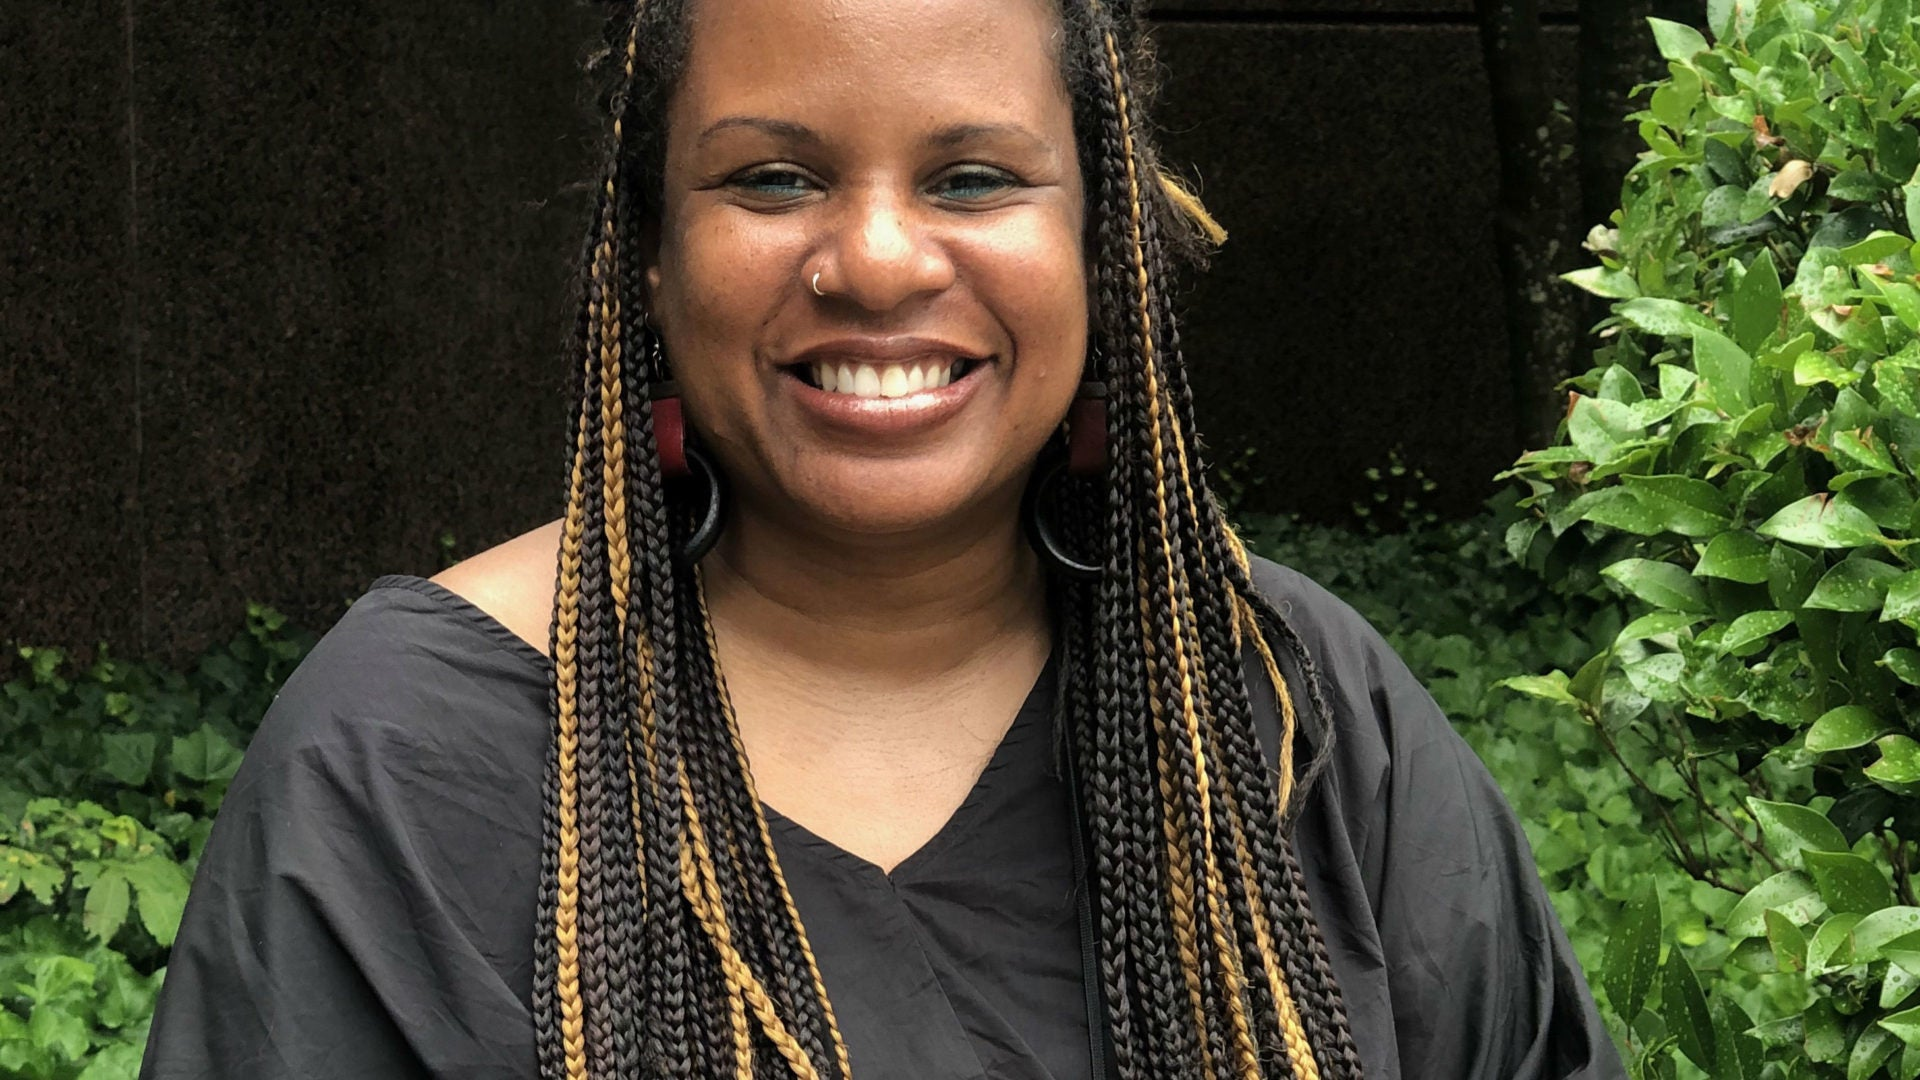 She, The People: Dara Cooper On Food Redlining, Reparations, And Freeing The Land